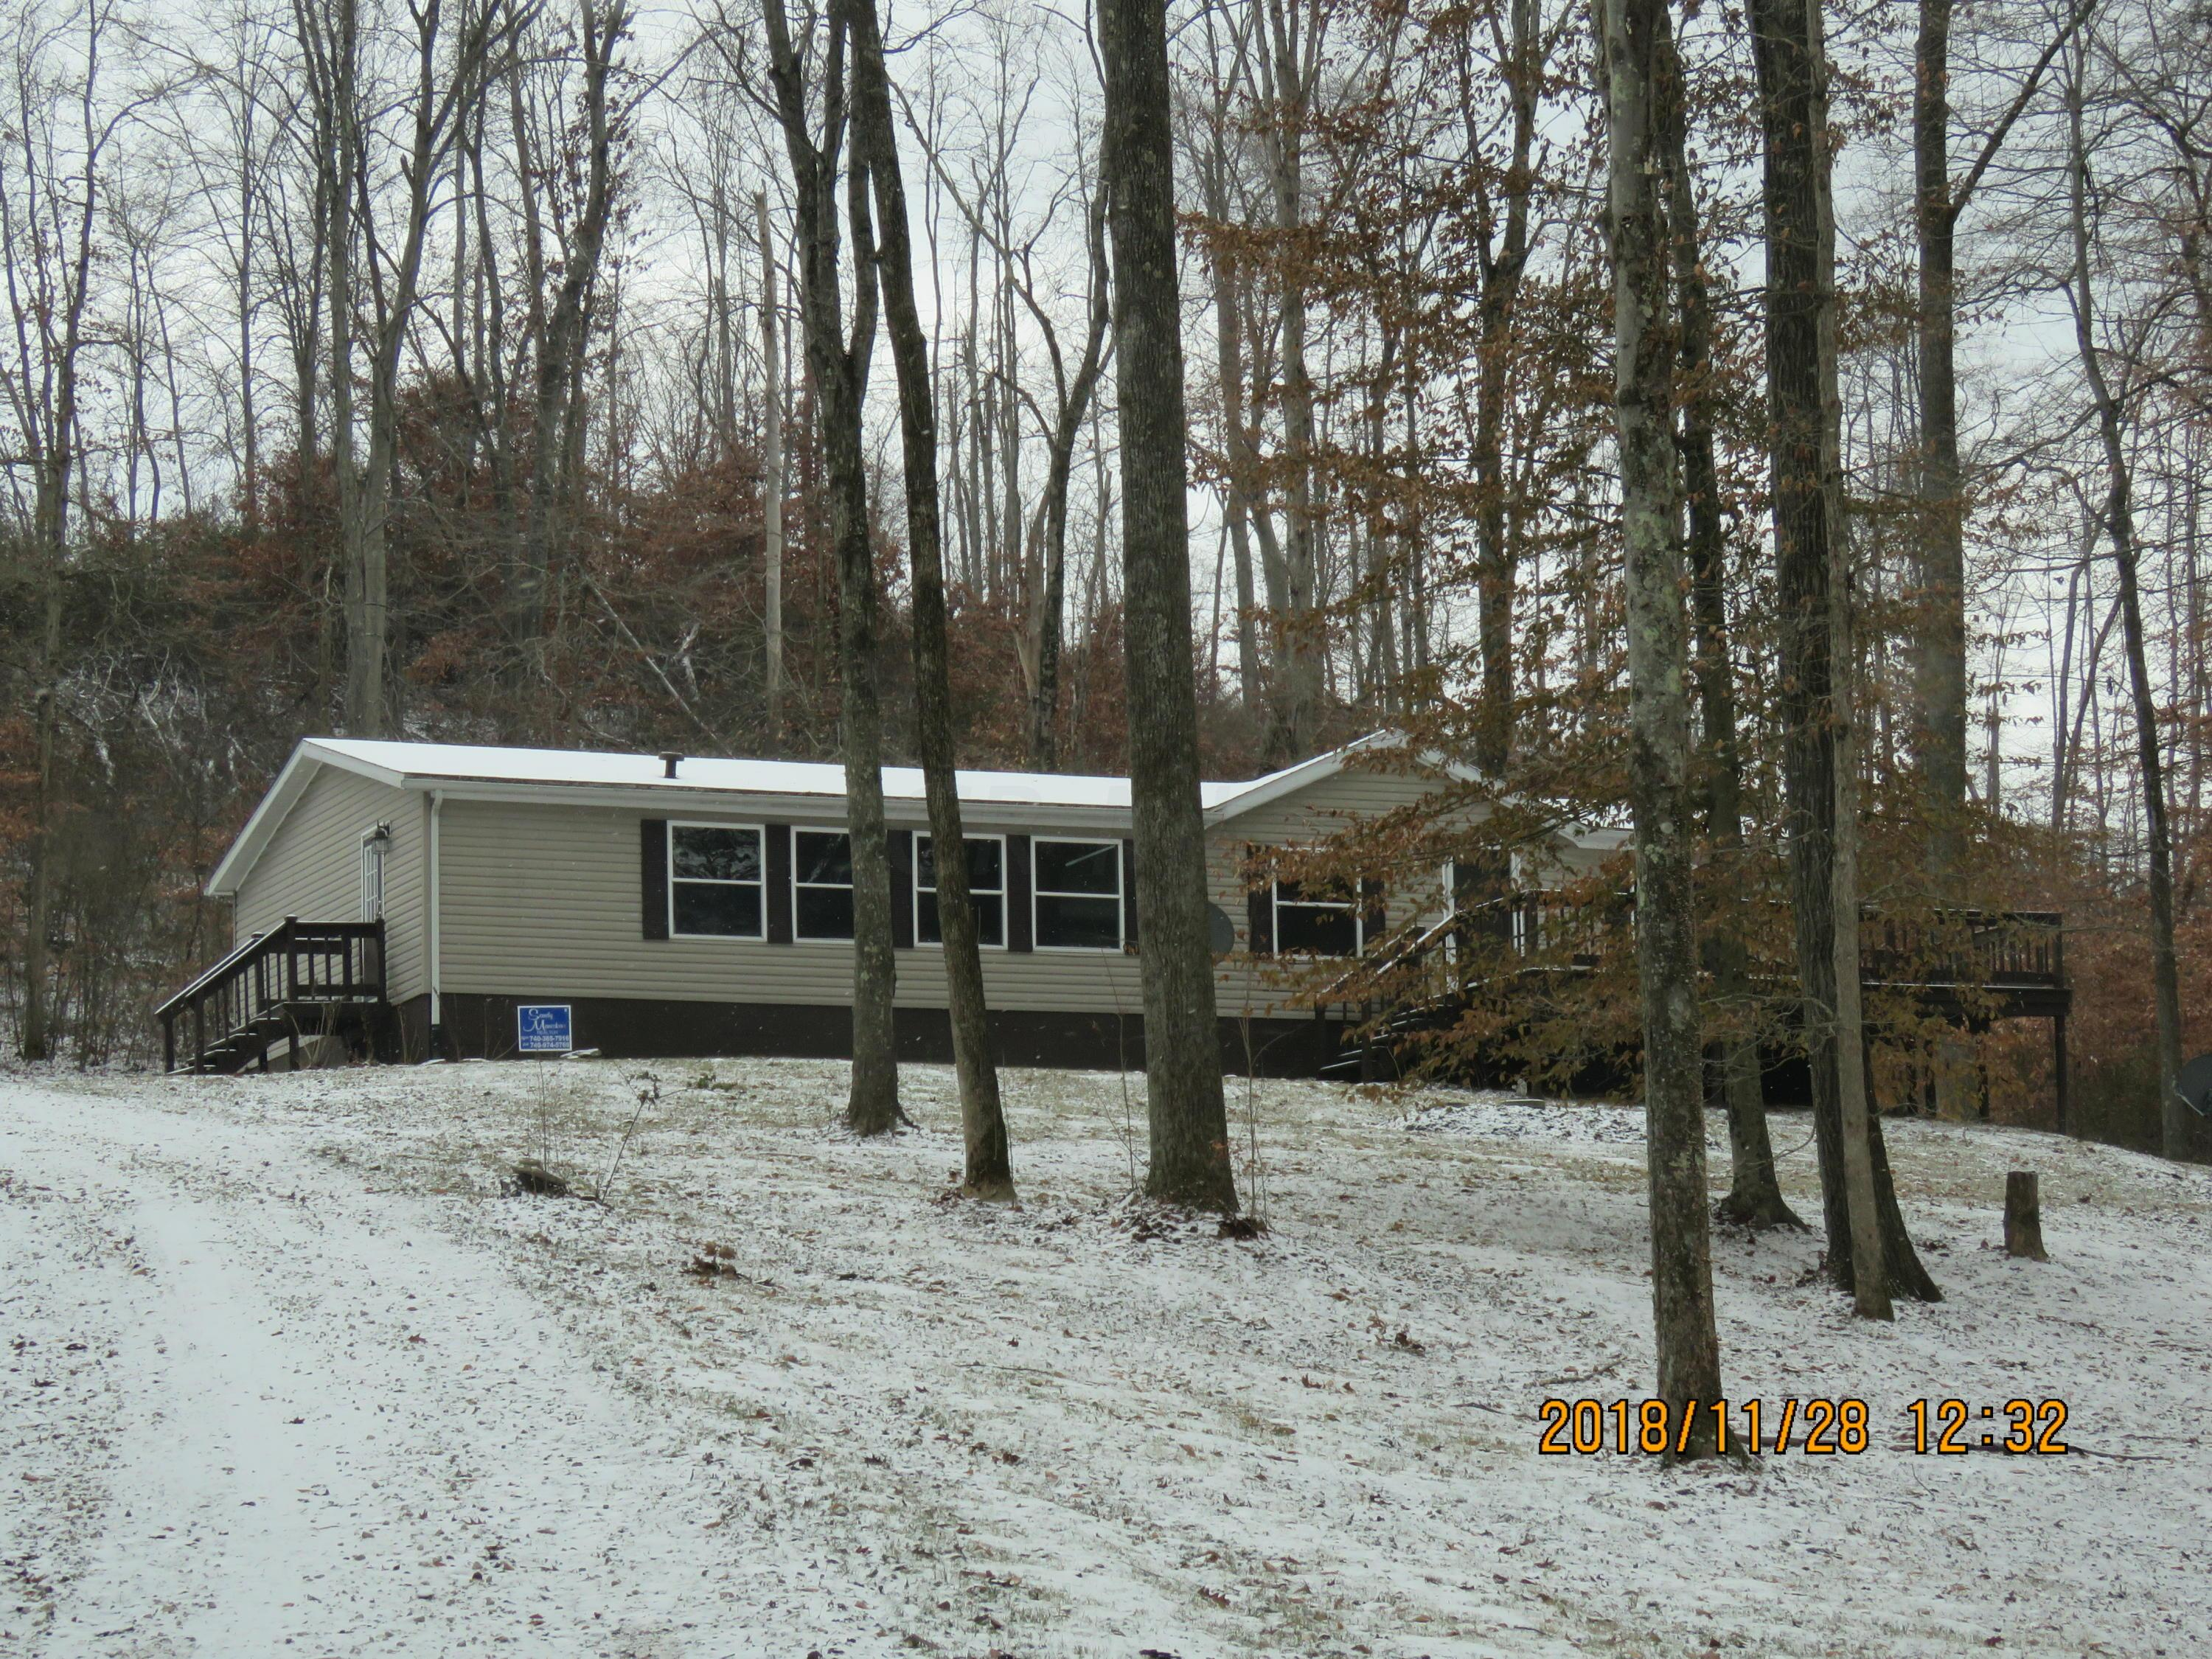 37785 Davis Chapel Road Logan Home Listings - Sandy Maniskas Realtors Hocking Hills and Logan Ohio Real Estate